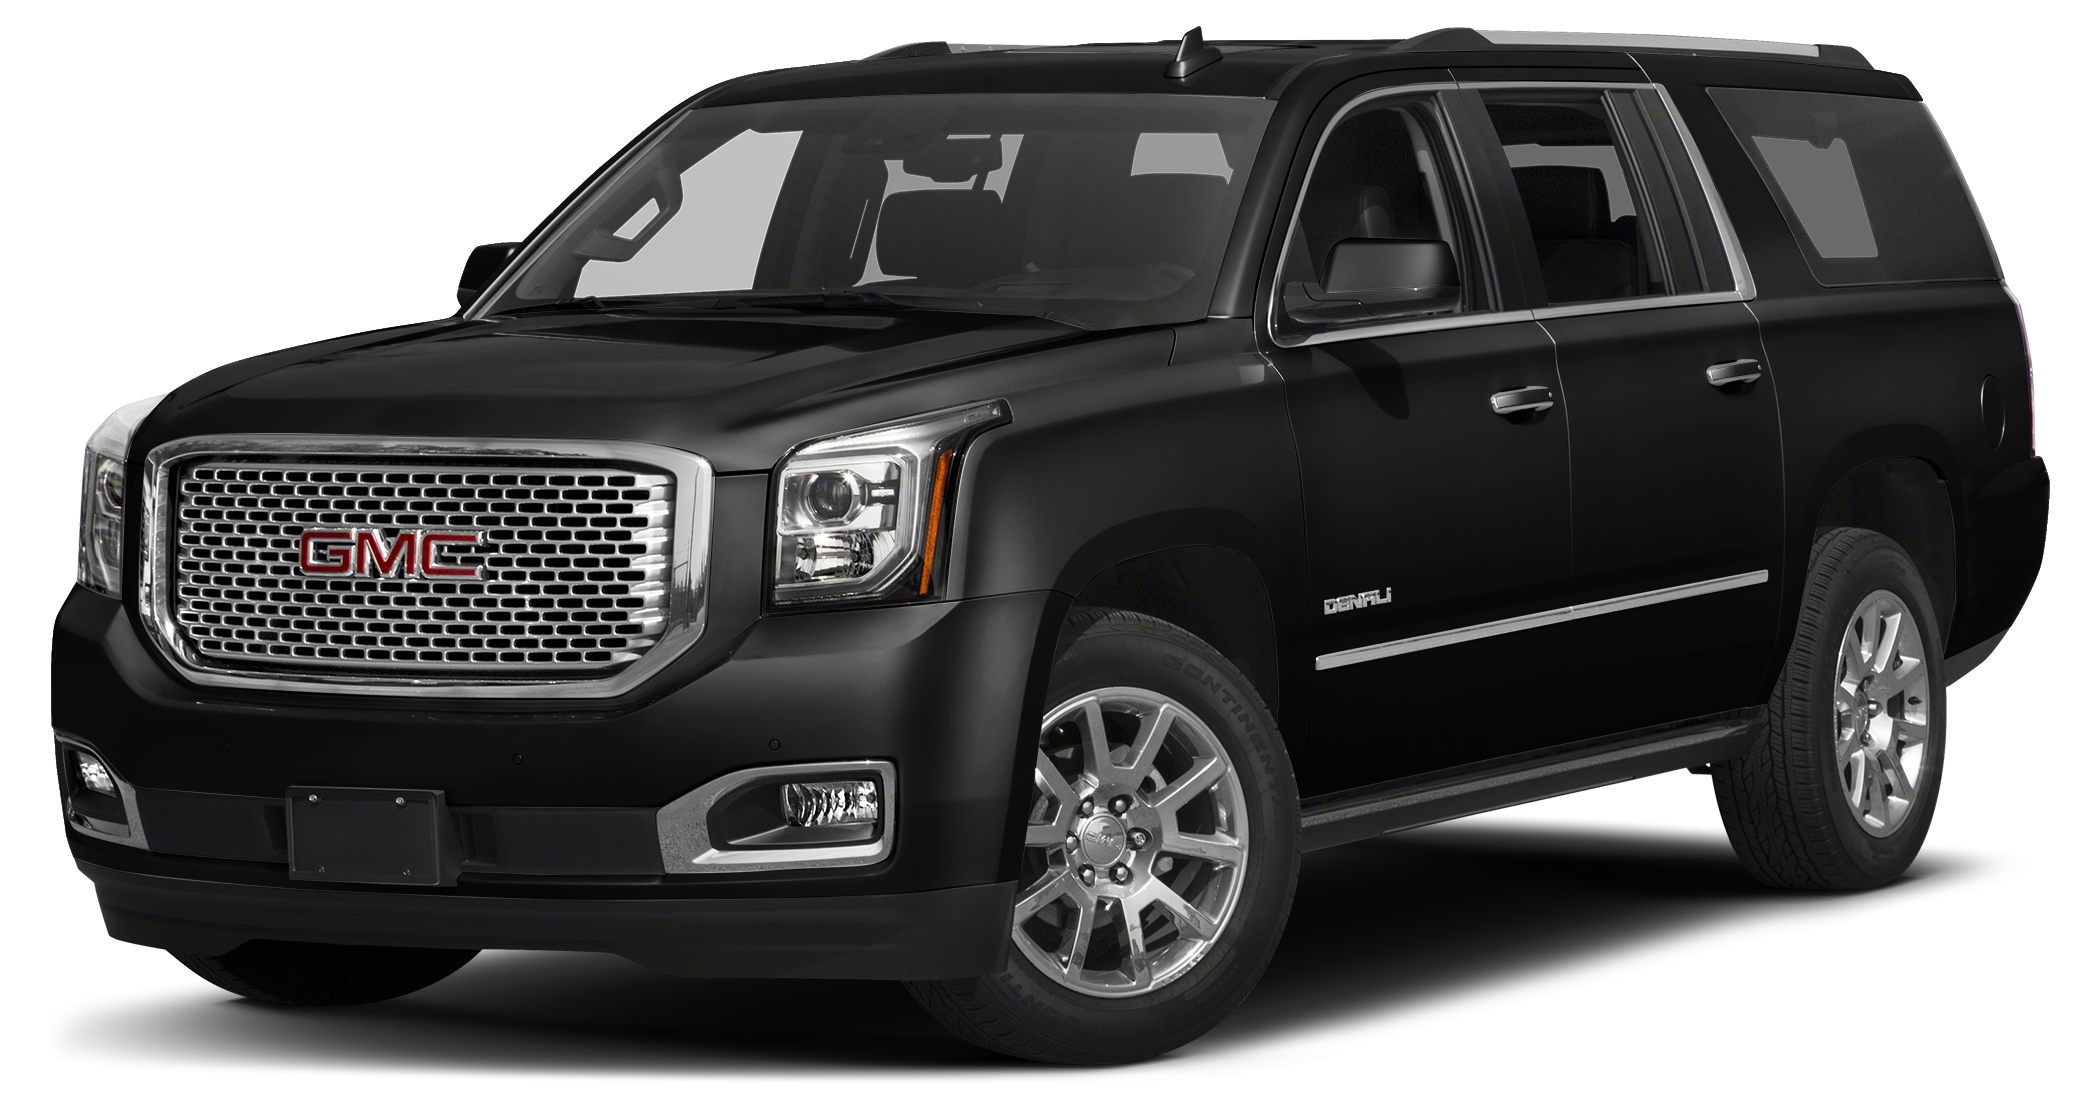 2017 GMC Yukon XL Denali Meet the GMC Yukon Its spacious interior offers three rows of seating th